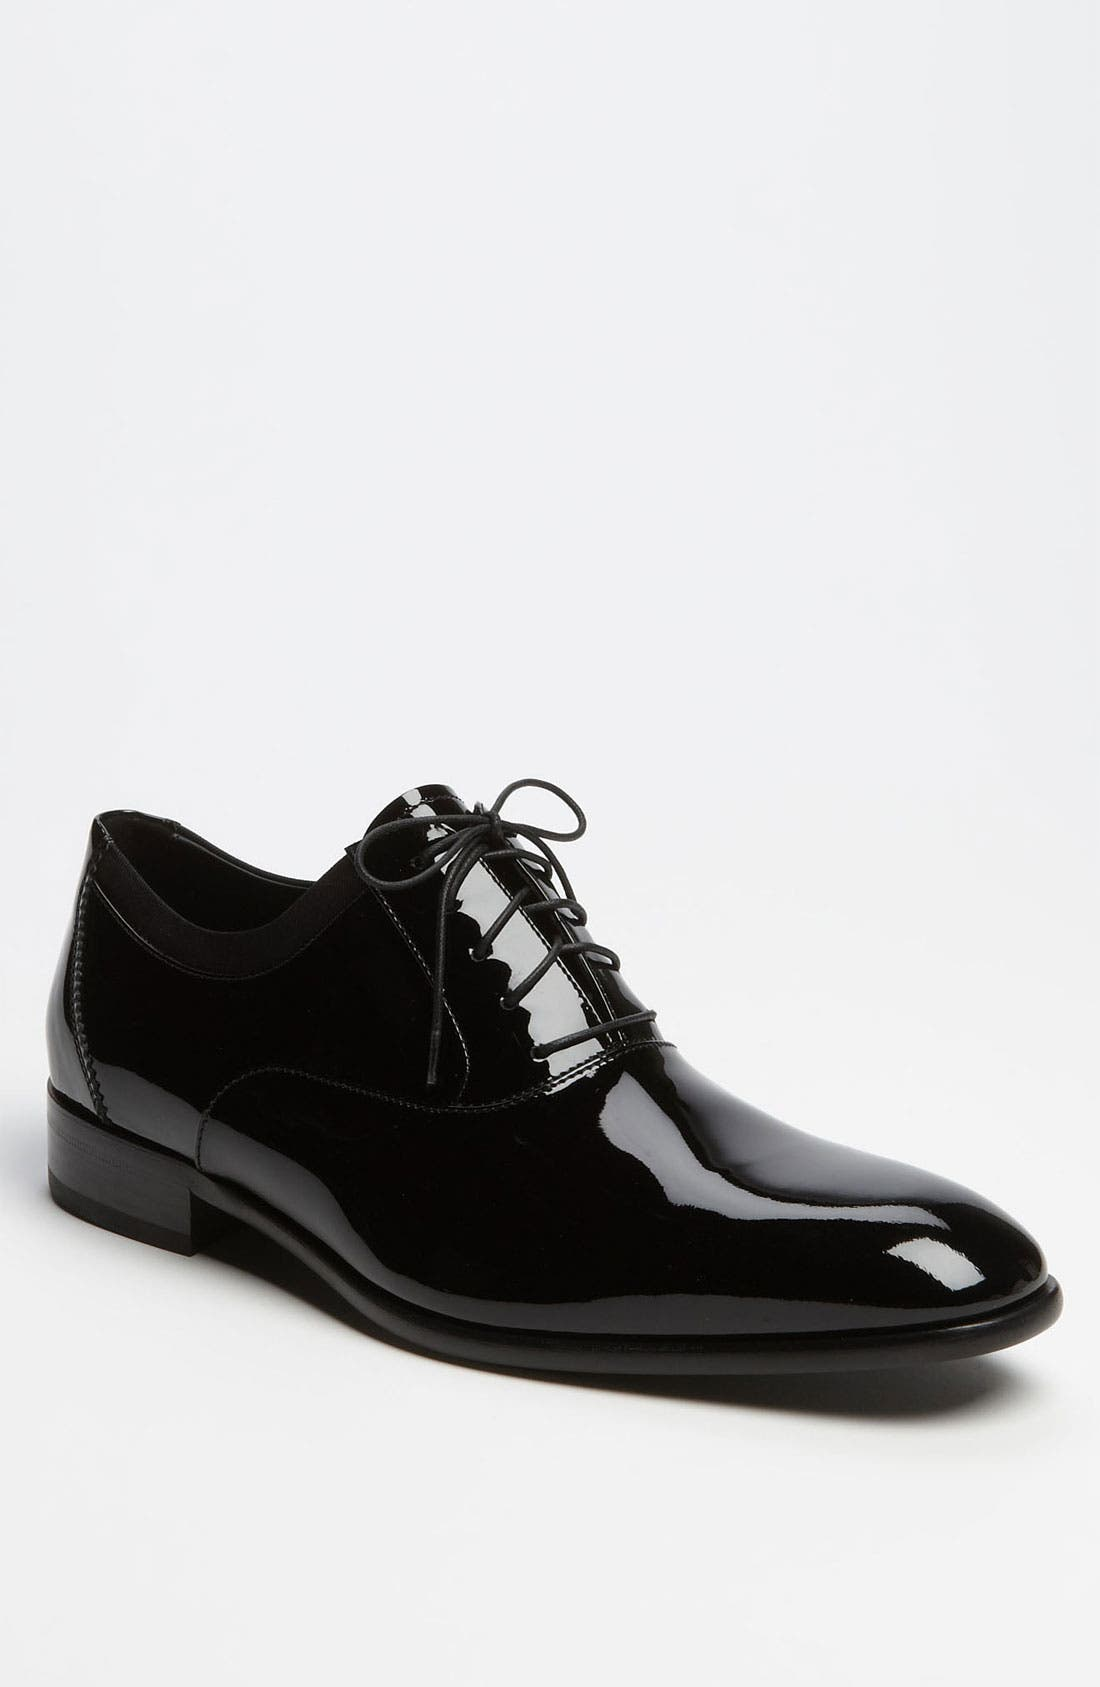 Salvatore Ferragamo Oxford